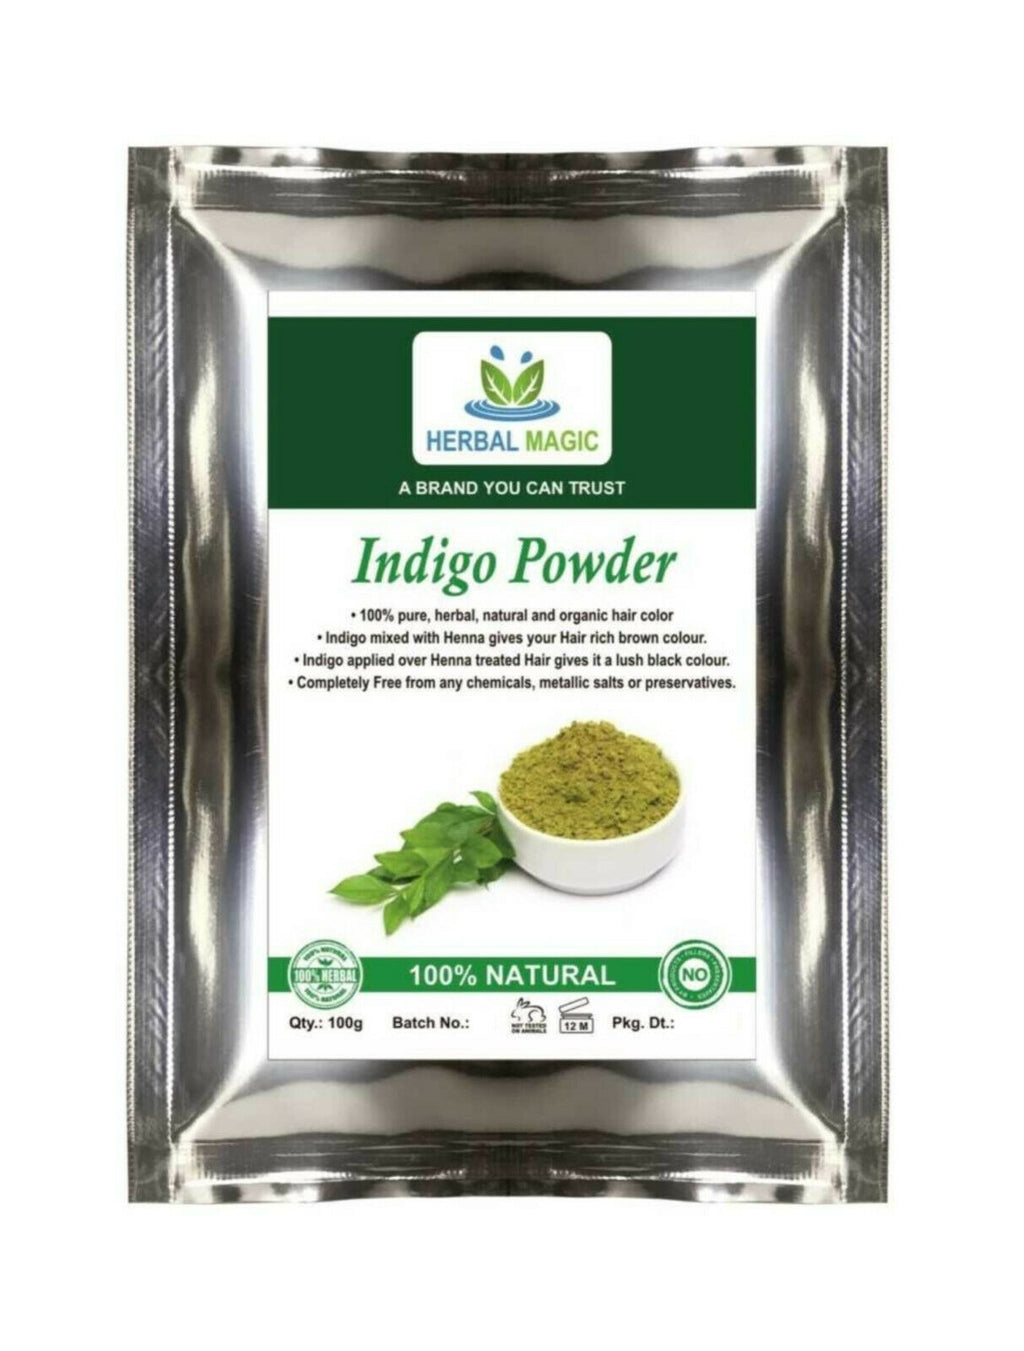 Organic Indigo Powder, Simply mix with Henna For Brown/Black hair color